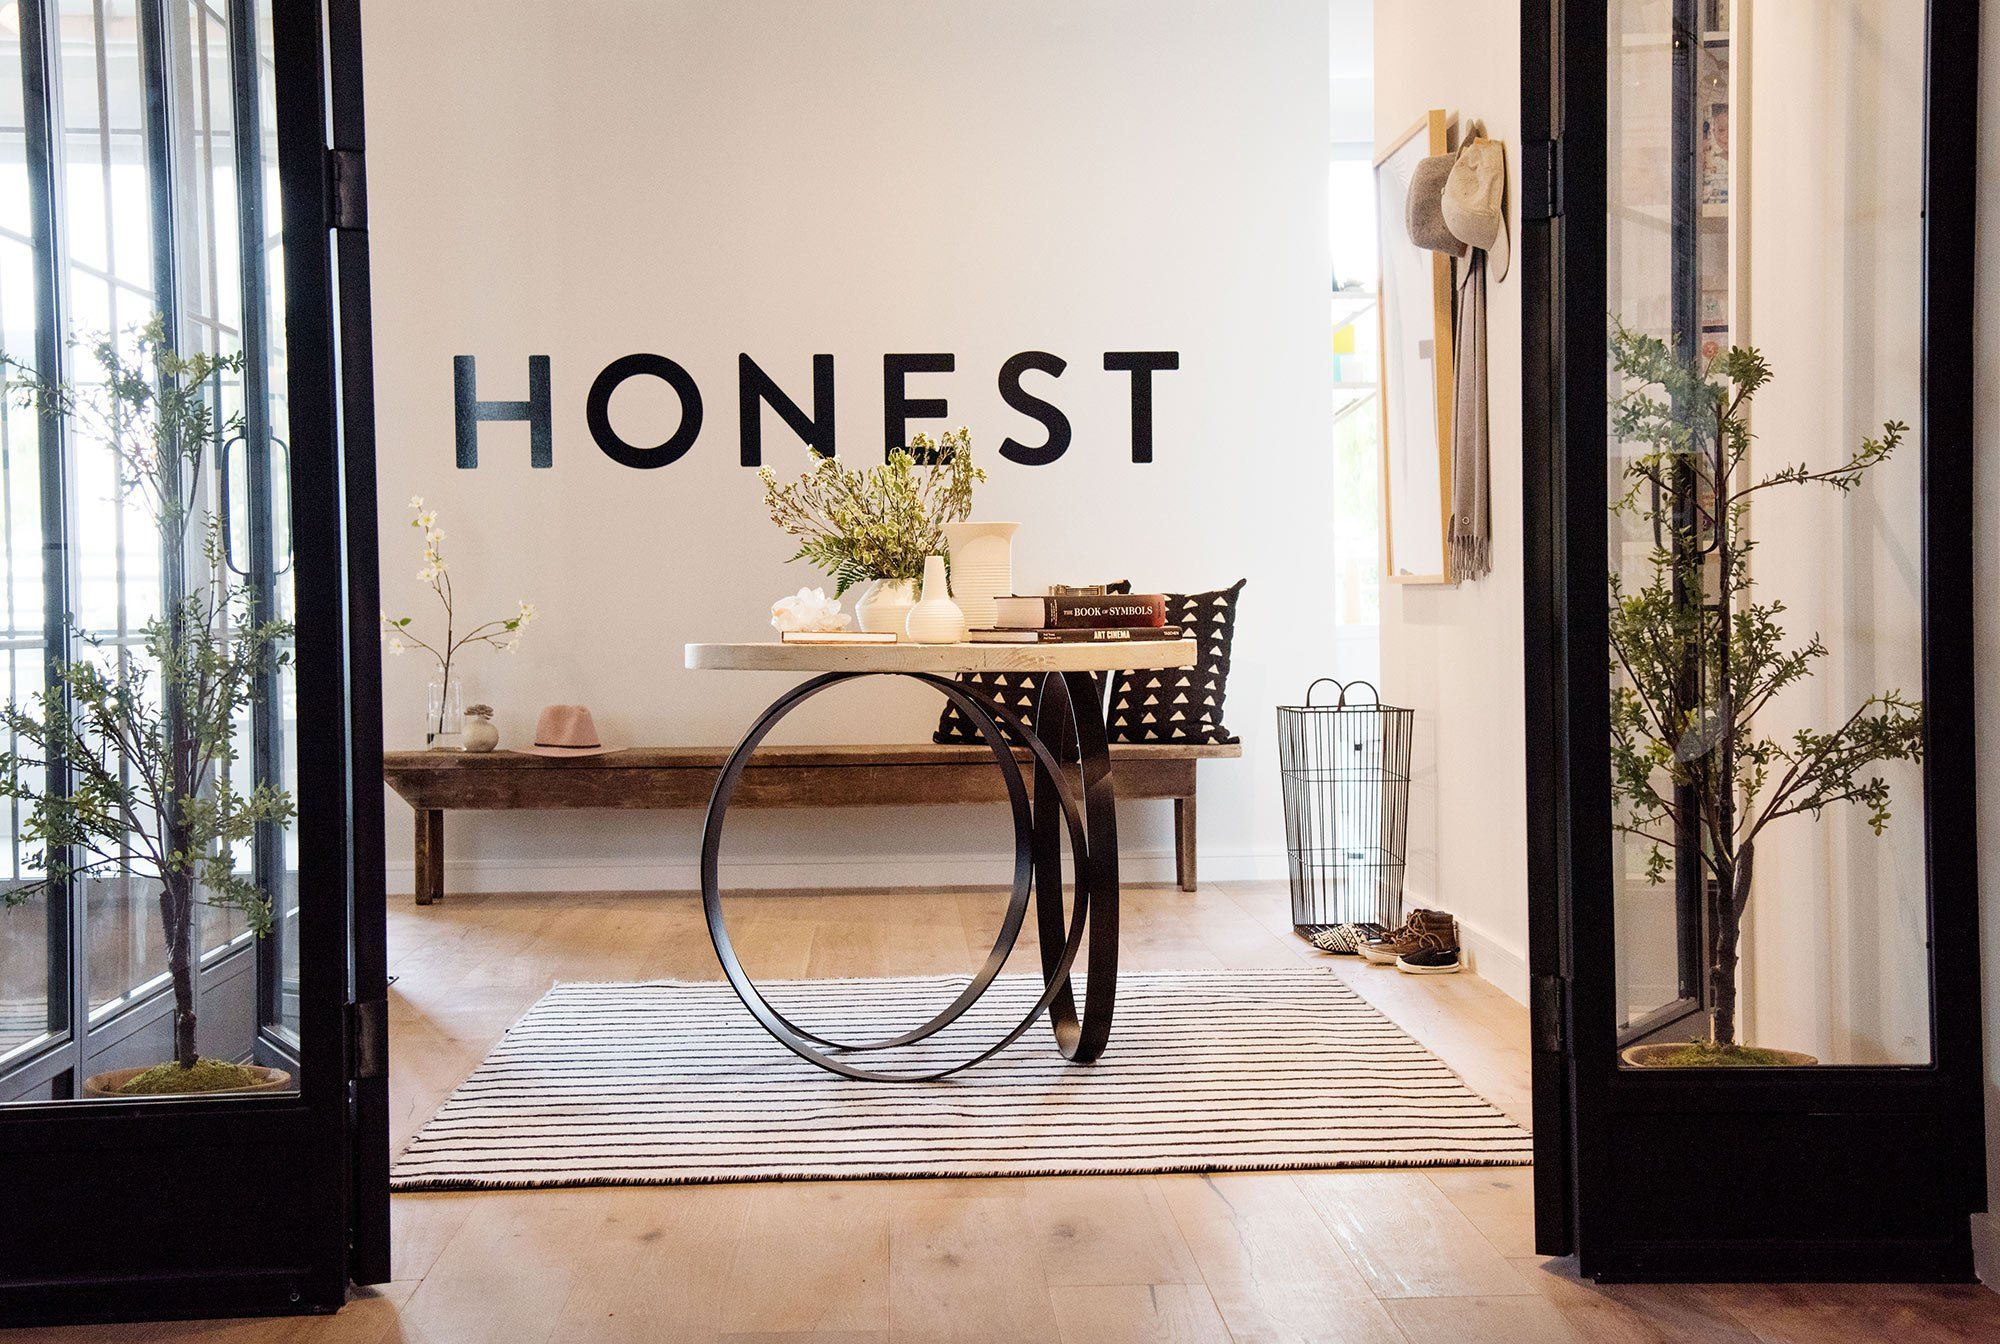 Jessica Alba Designed The New Honest Co Headquarters To Look Just